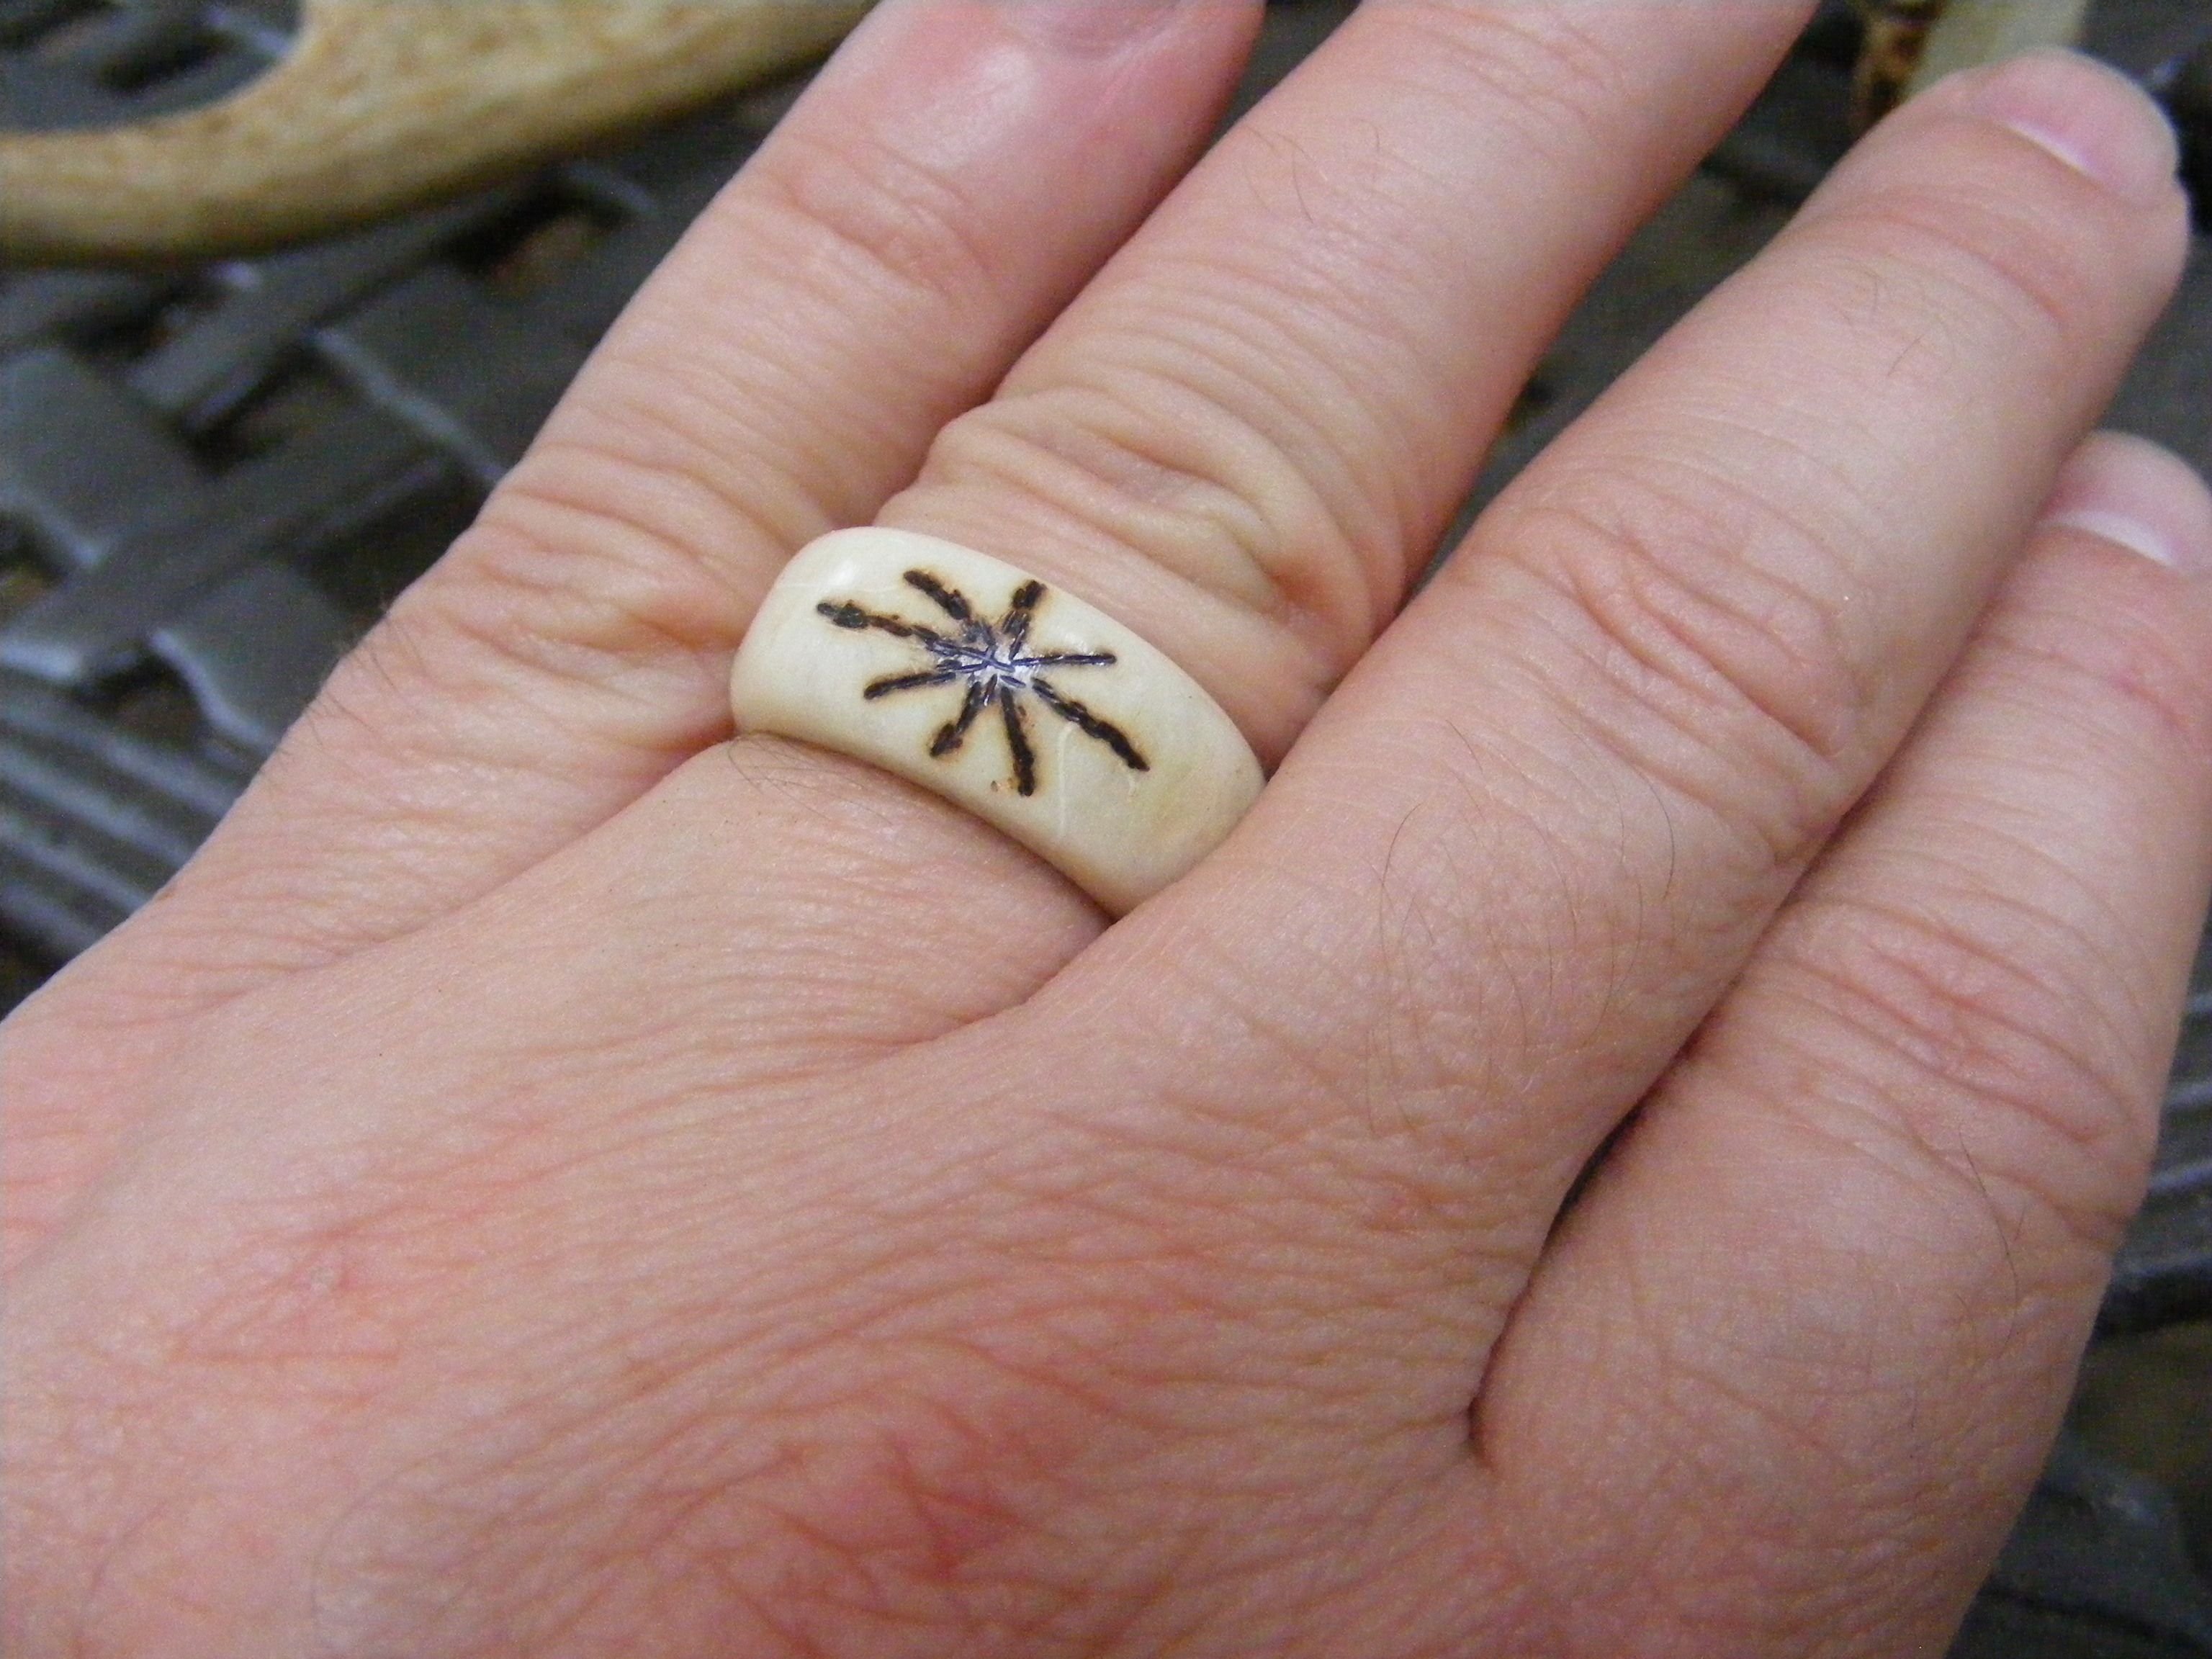 Antler Rings and How to Make Them | man crafting | Pinterest ...